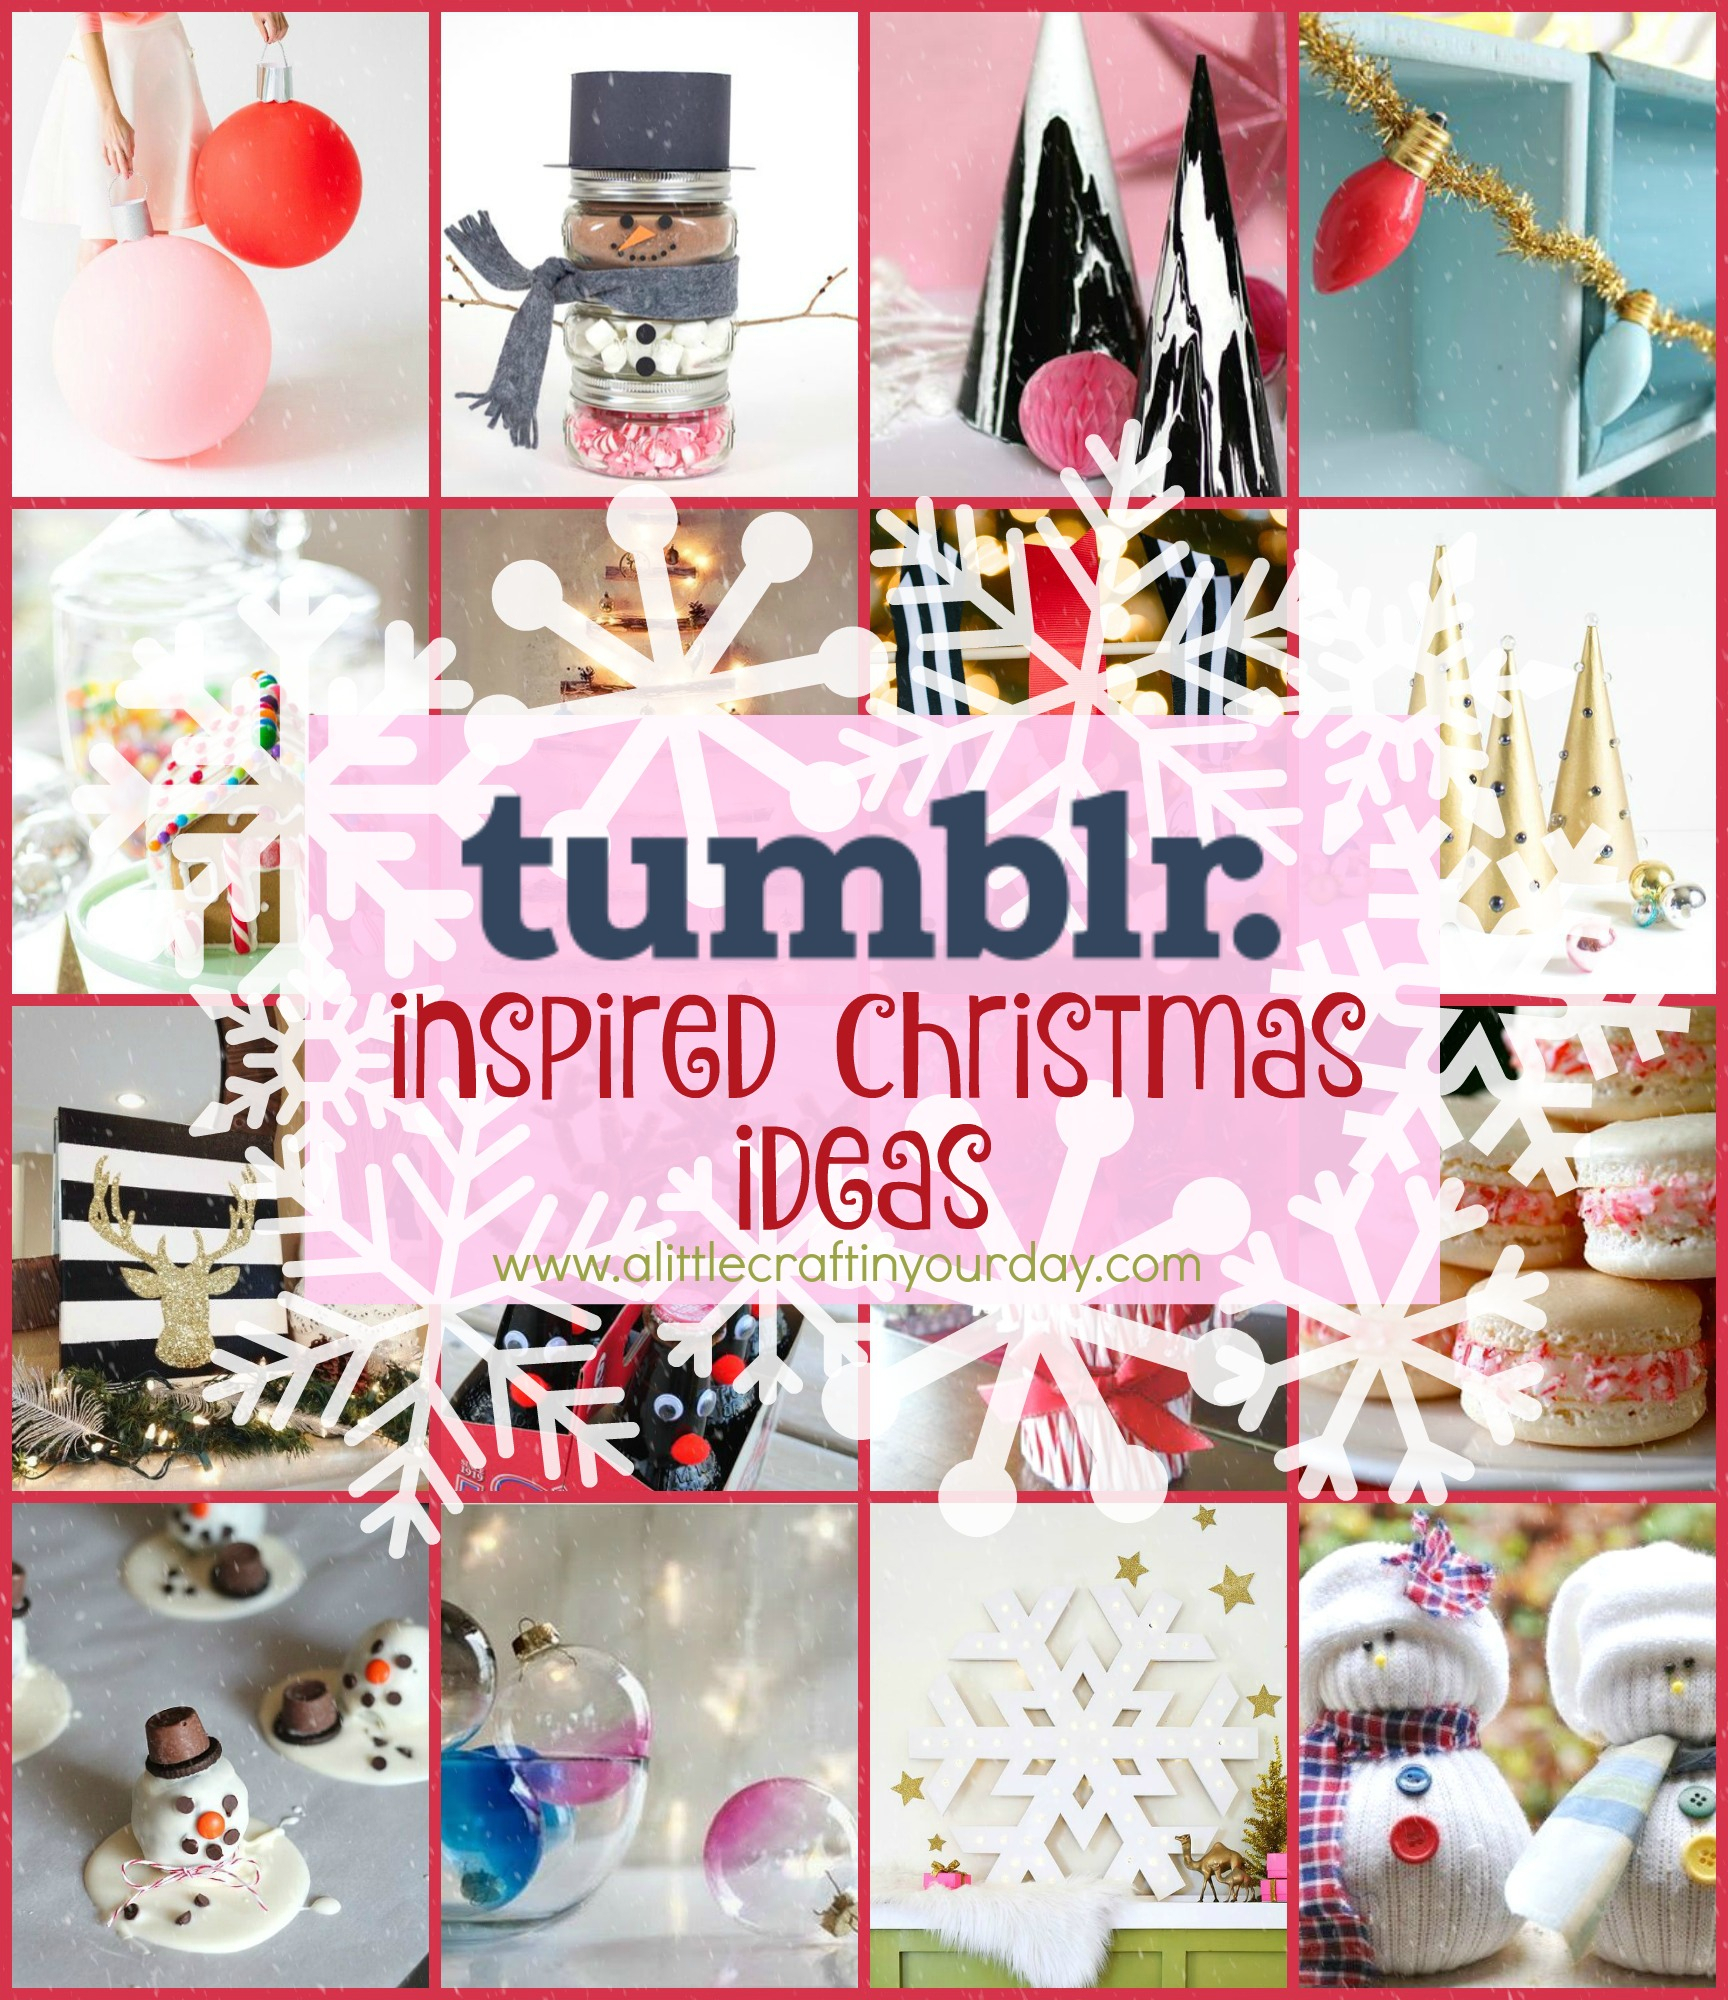 10 Best Christmas Craft Ideas On Pinterest tumblr inspired diy christmas a little craft in your day 2020